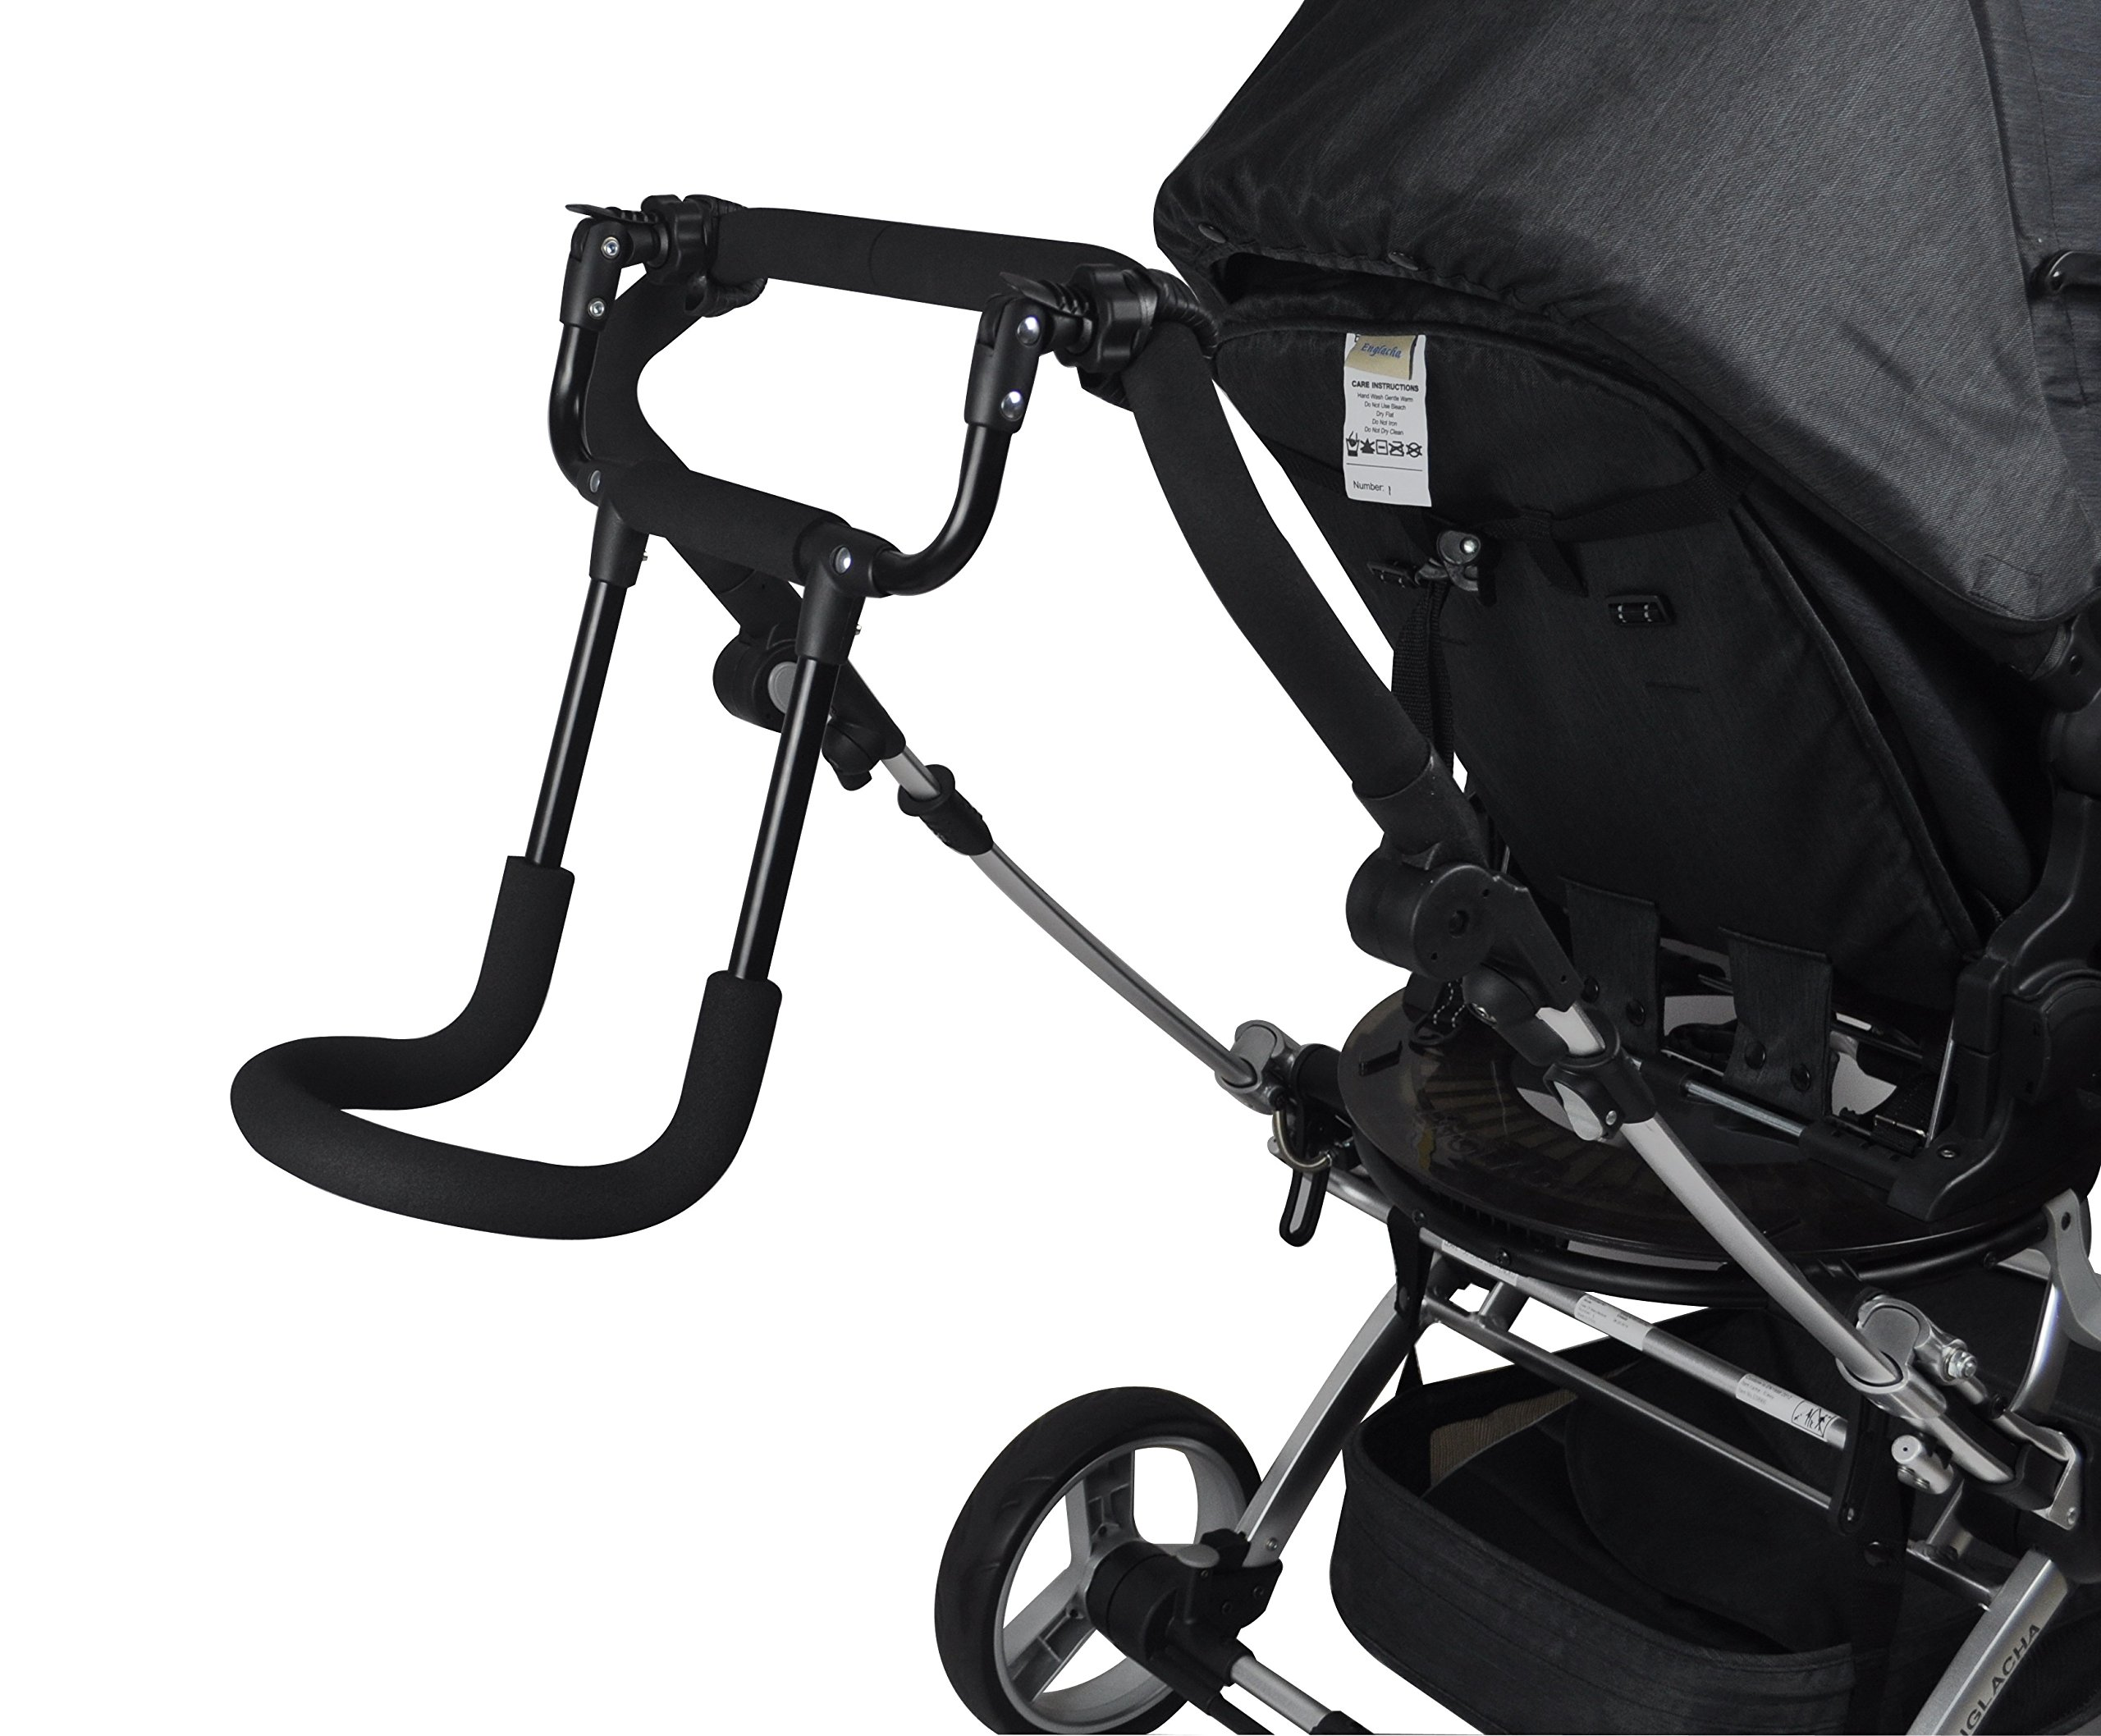 Englacha Cozy Stroll Handle Extension Bar, Black Englacha USA Universal lightweight handle extension bar (aluminum tube) can be installed on any buggy, stroller or pram without extra tools required Allows you control your stroller with just one hand and multitask with your free hand Increases extra at least 12-15 cm space for walking in the back of stroller 4